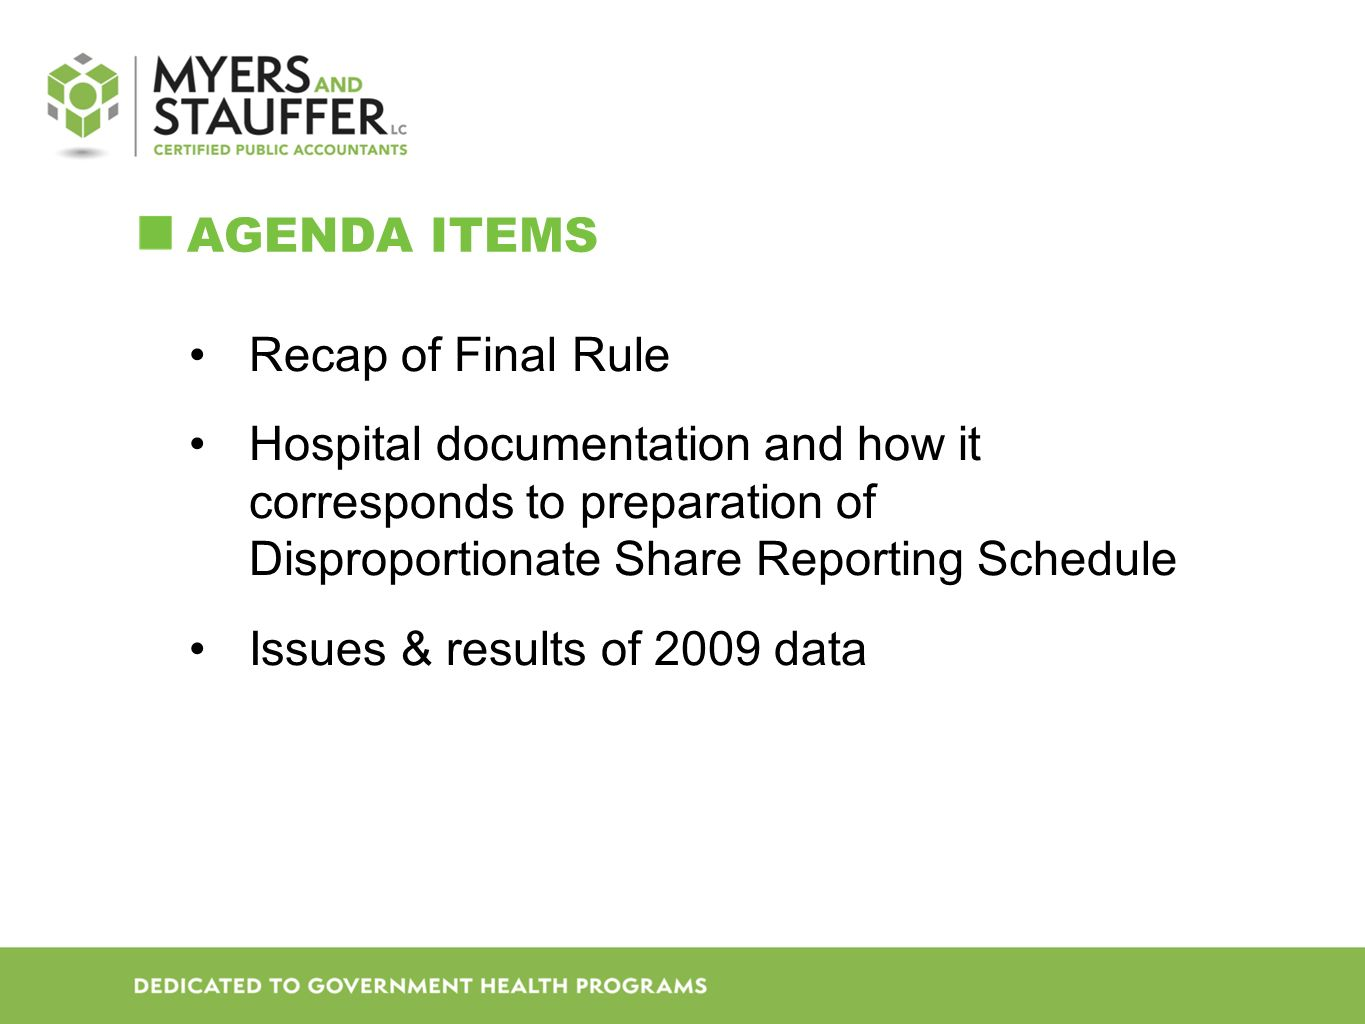 AGENDA ITEMS Recap of Final Rule Hospital documentation and how it corresponds to preparation of Disproportionate Share Reporting Schedule Issues & results of 2009 data